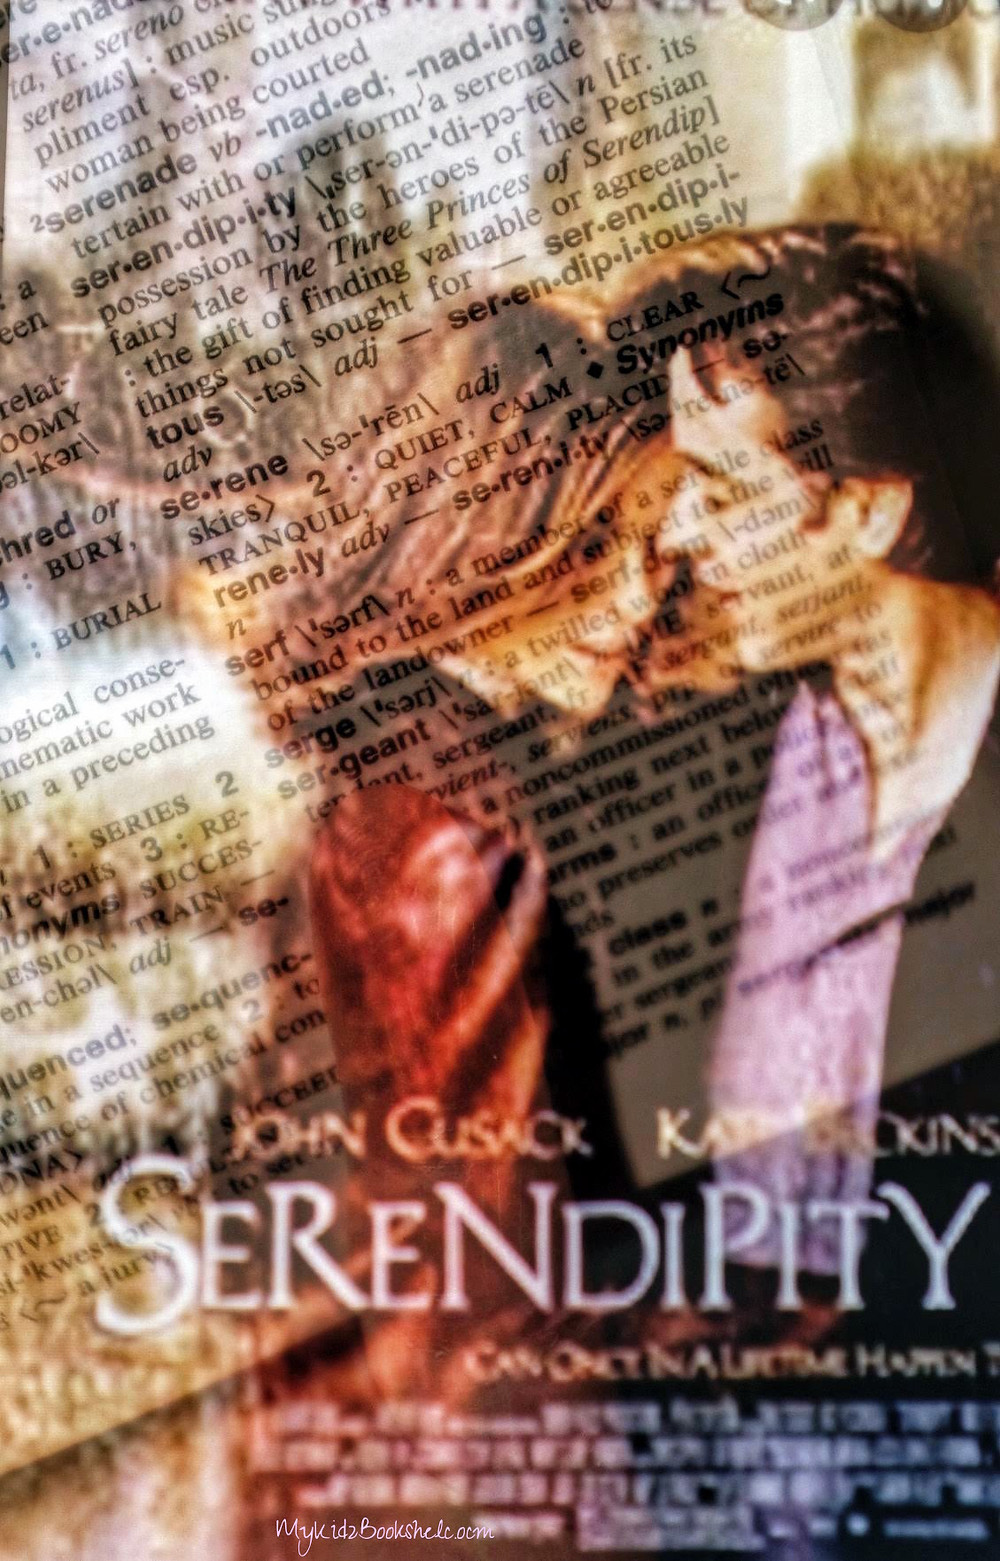 Serendipity-movie-poster-double-exposure-with-dictionary-definition-of-the-word-Serendipity